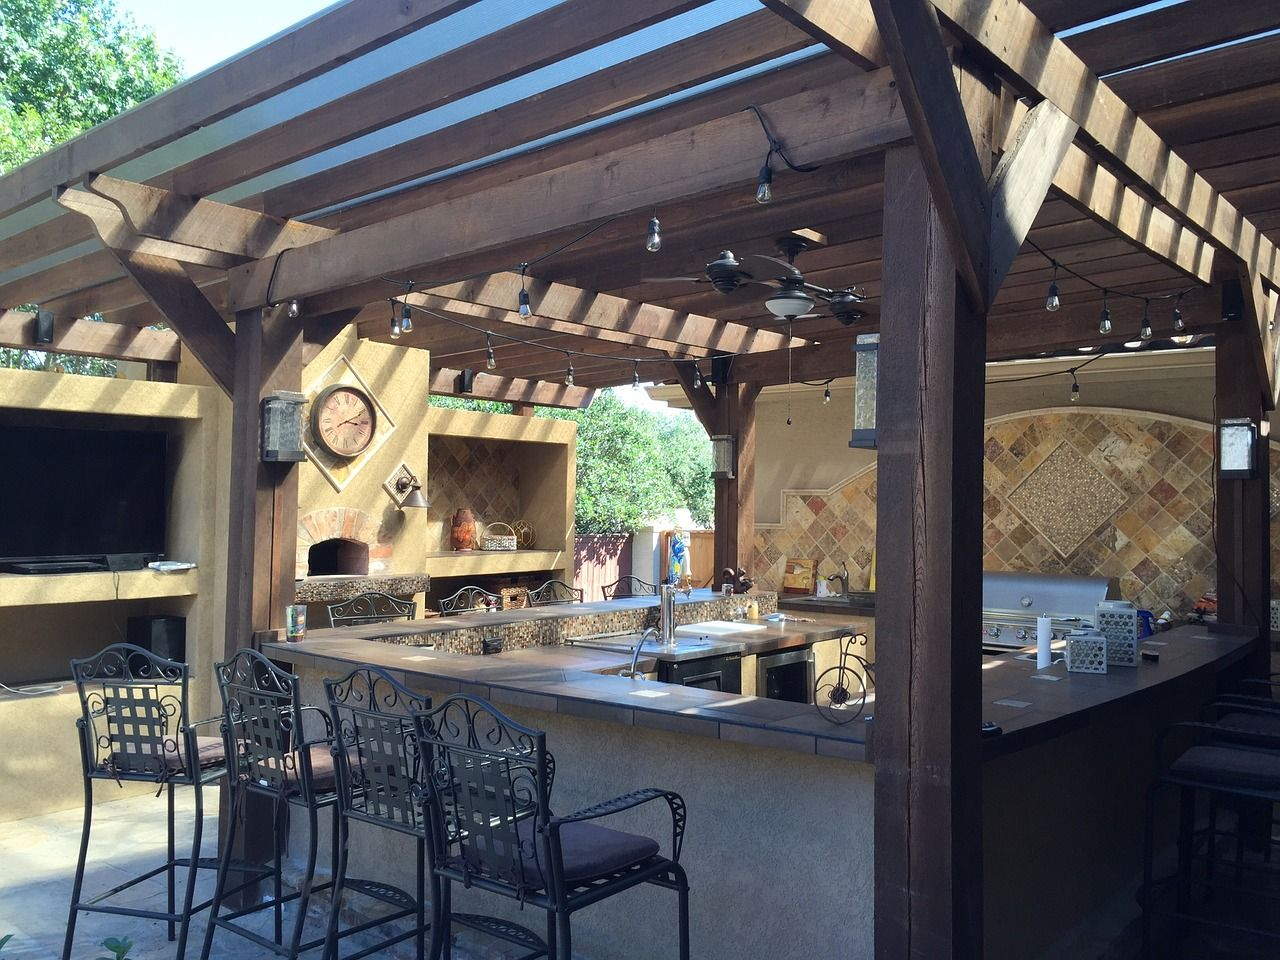 An Ideal Way To Select Your Outdoor Kitchen